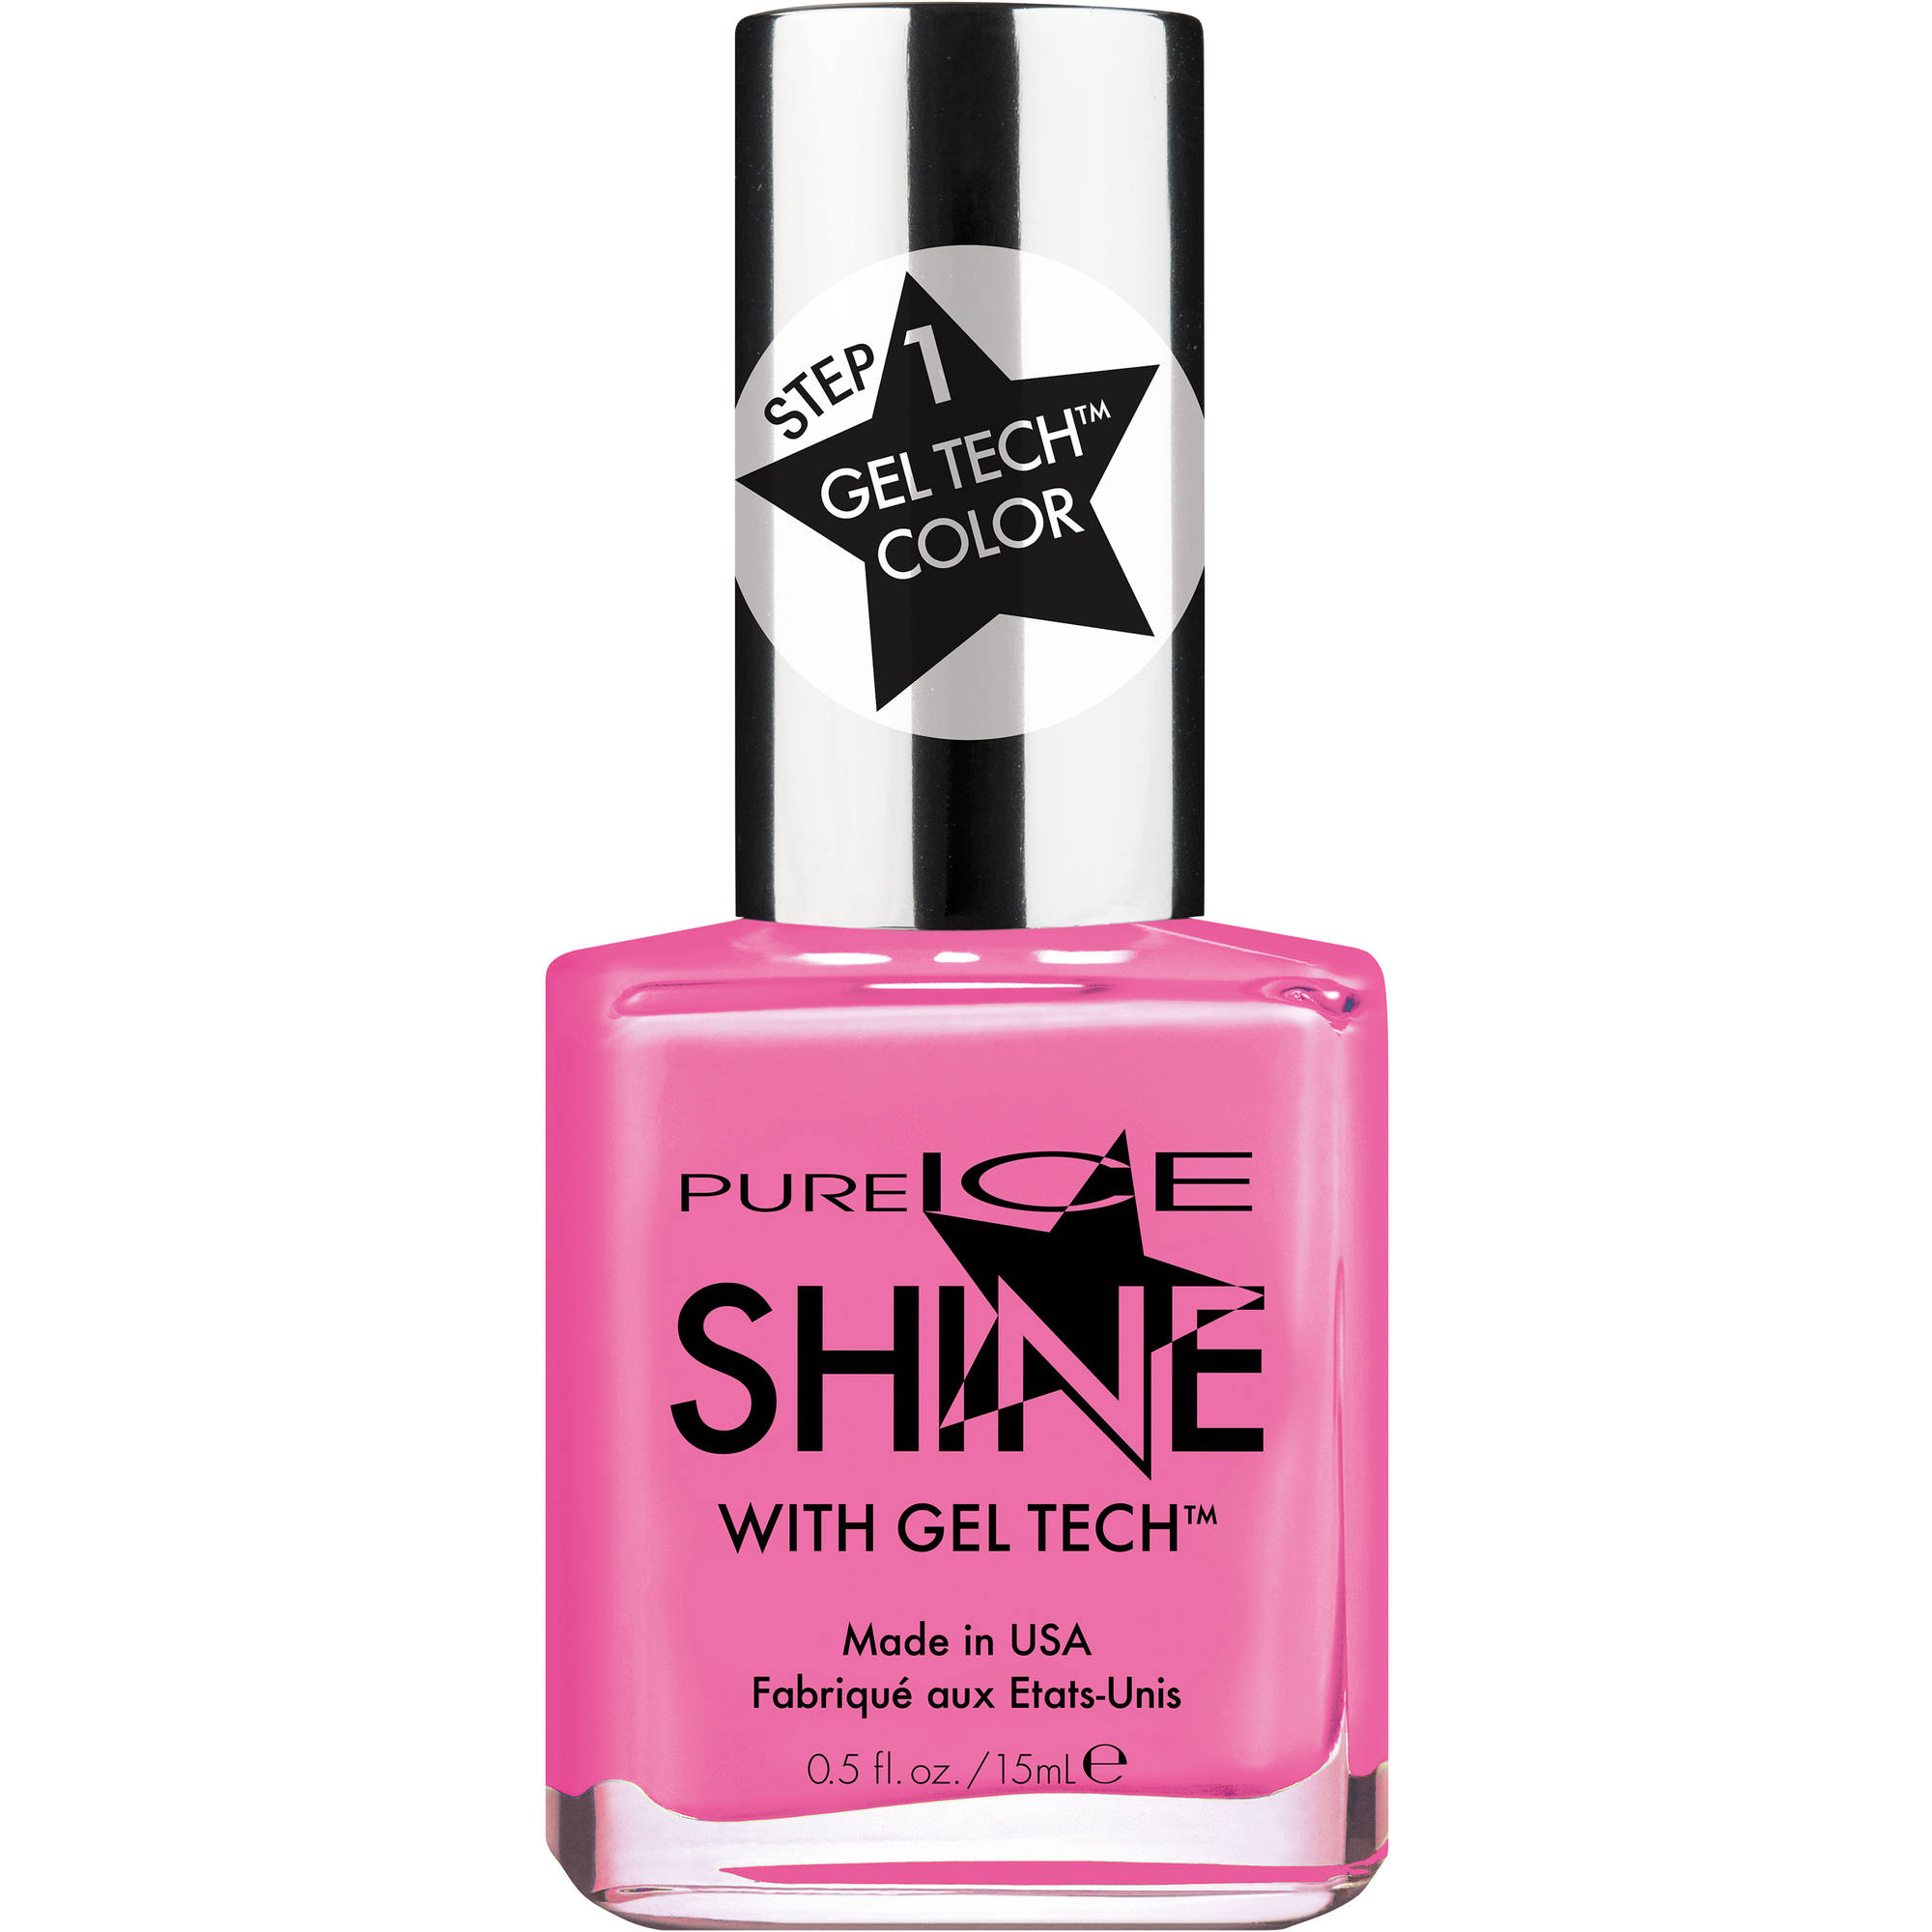 Pure Ice Shine with Gel Tech Nail Polish, Sleek Peek, 0.5 fl oz